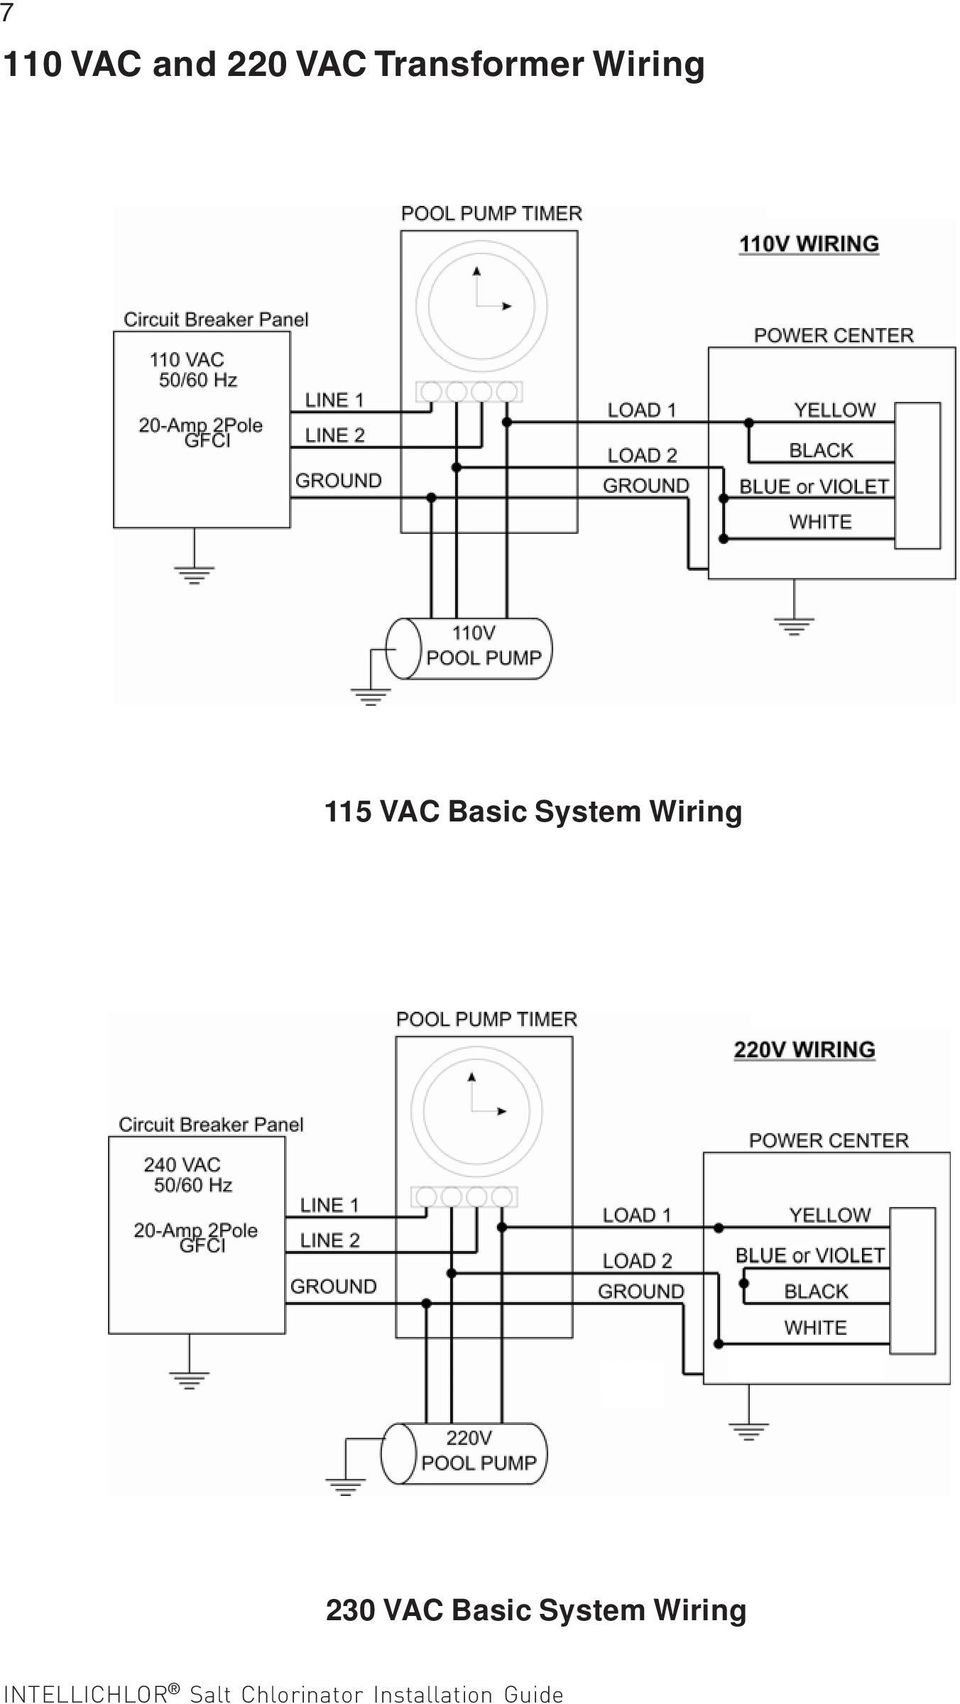 Intellichlor Power Center For Use With Intellilchlor Chlorine Pentair Pool Pump Wiring Diagram Vac Basic System